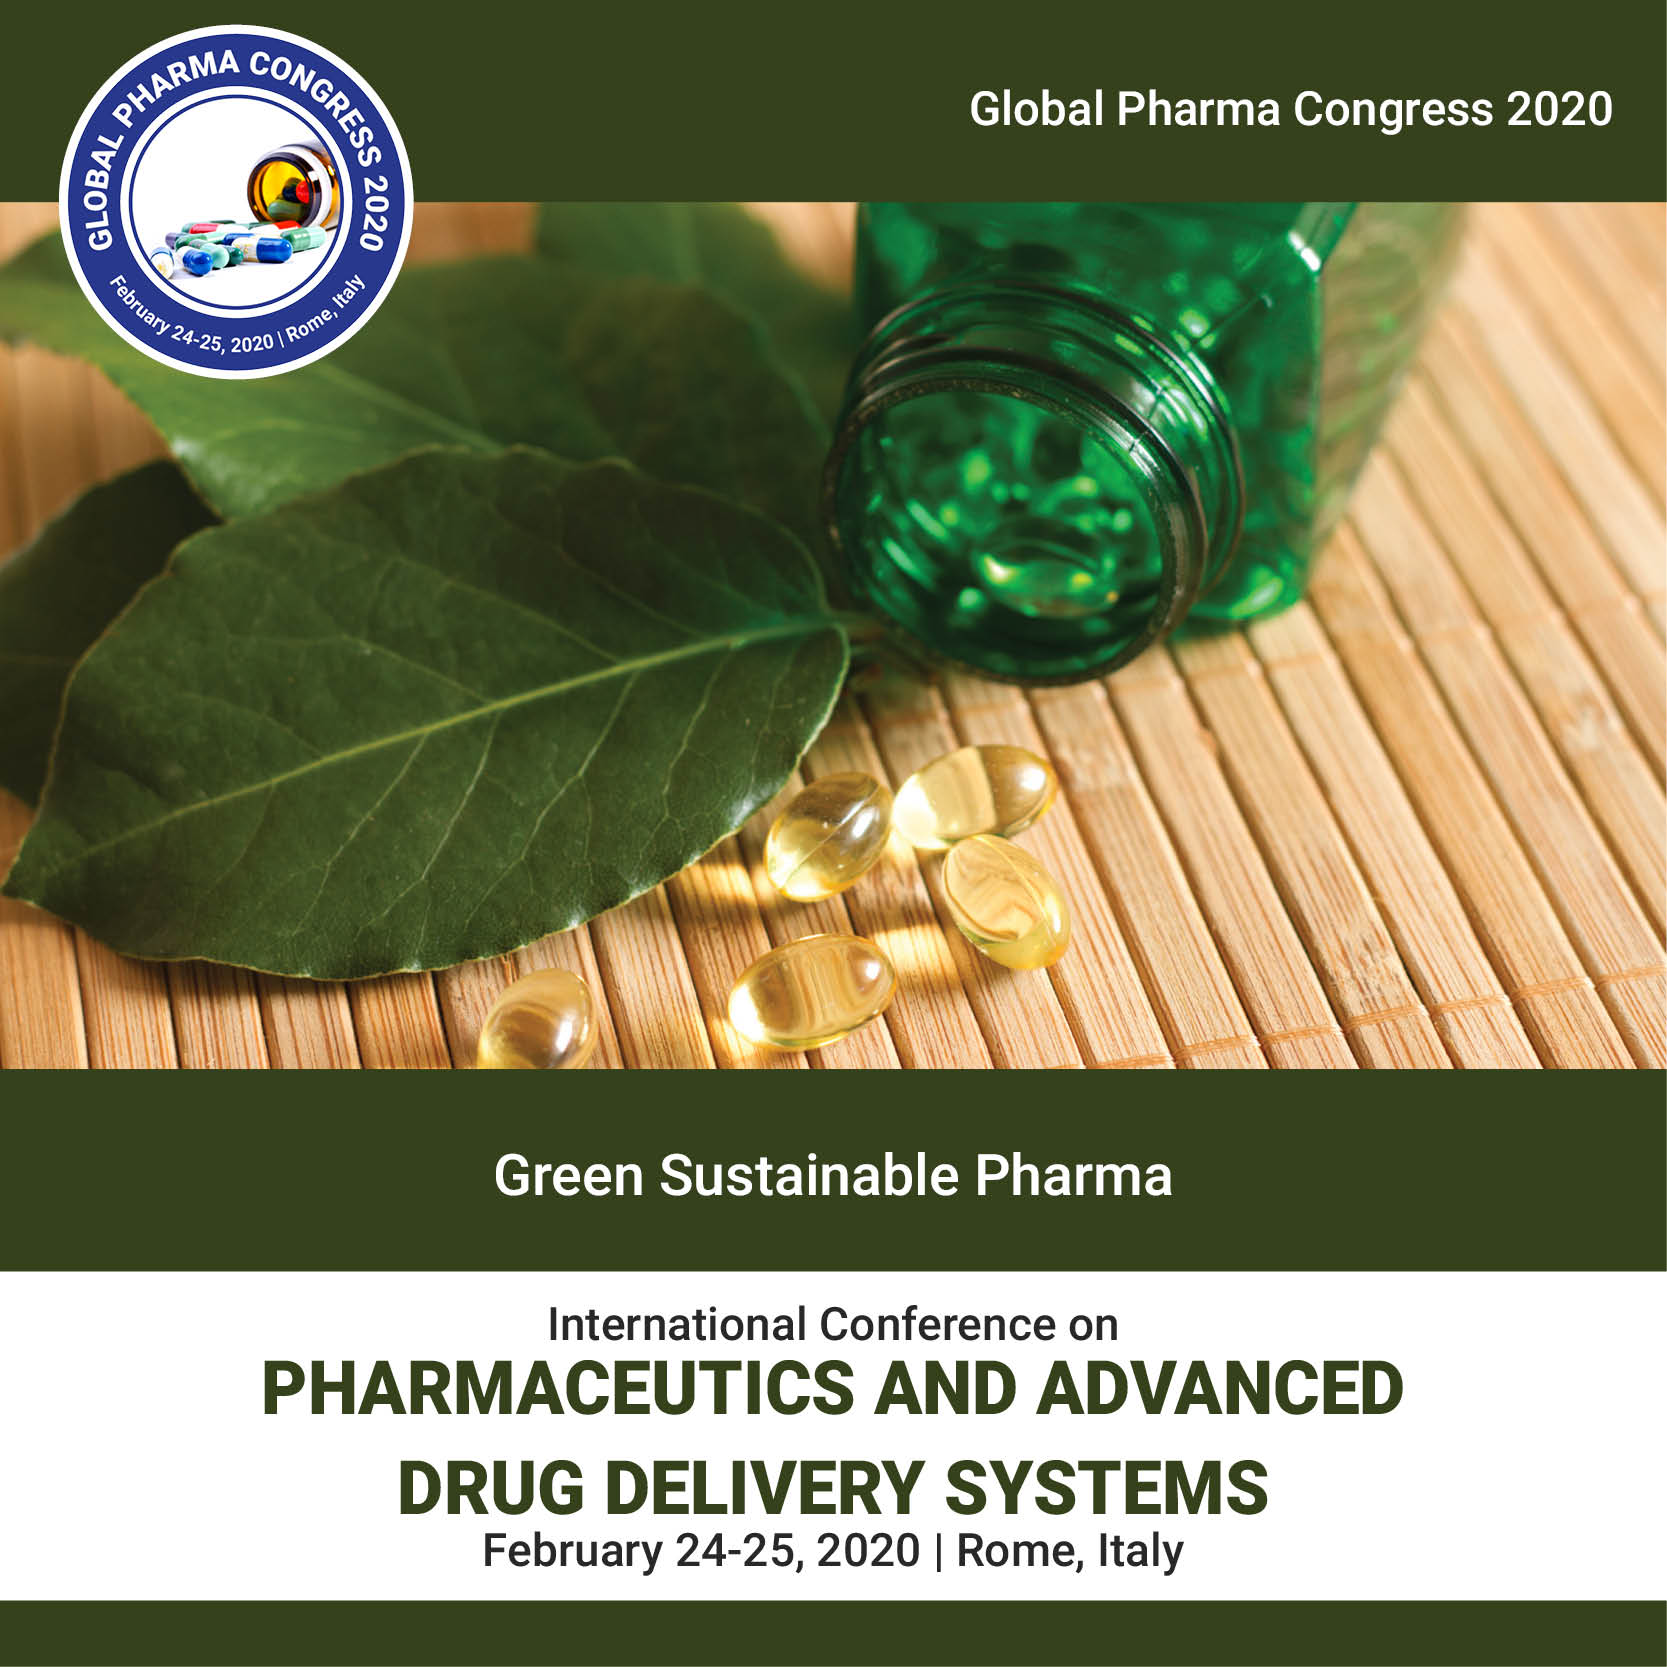 Green Sustainable Pharma Photo